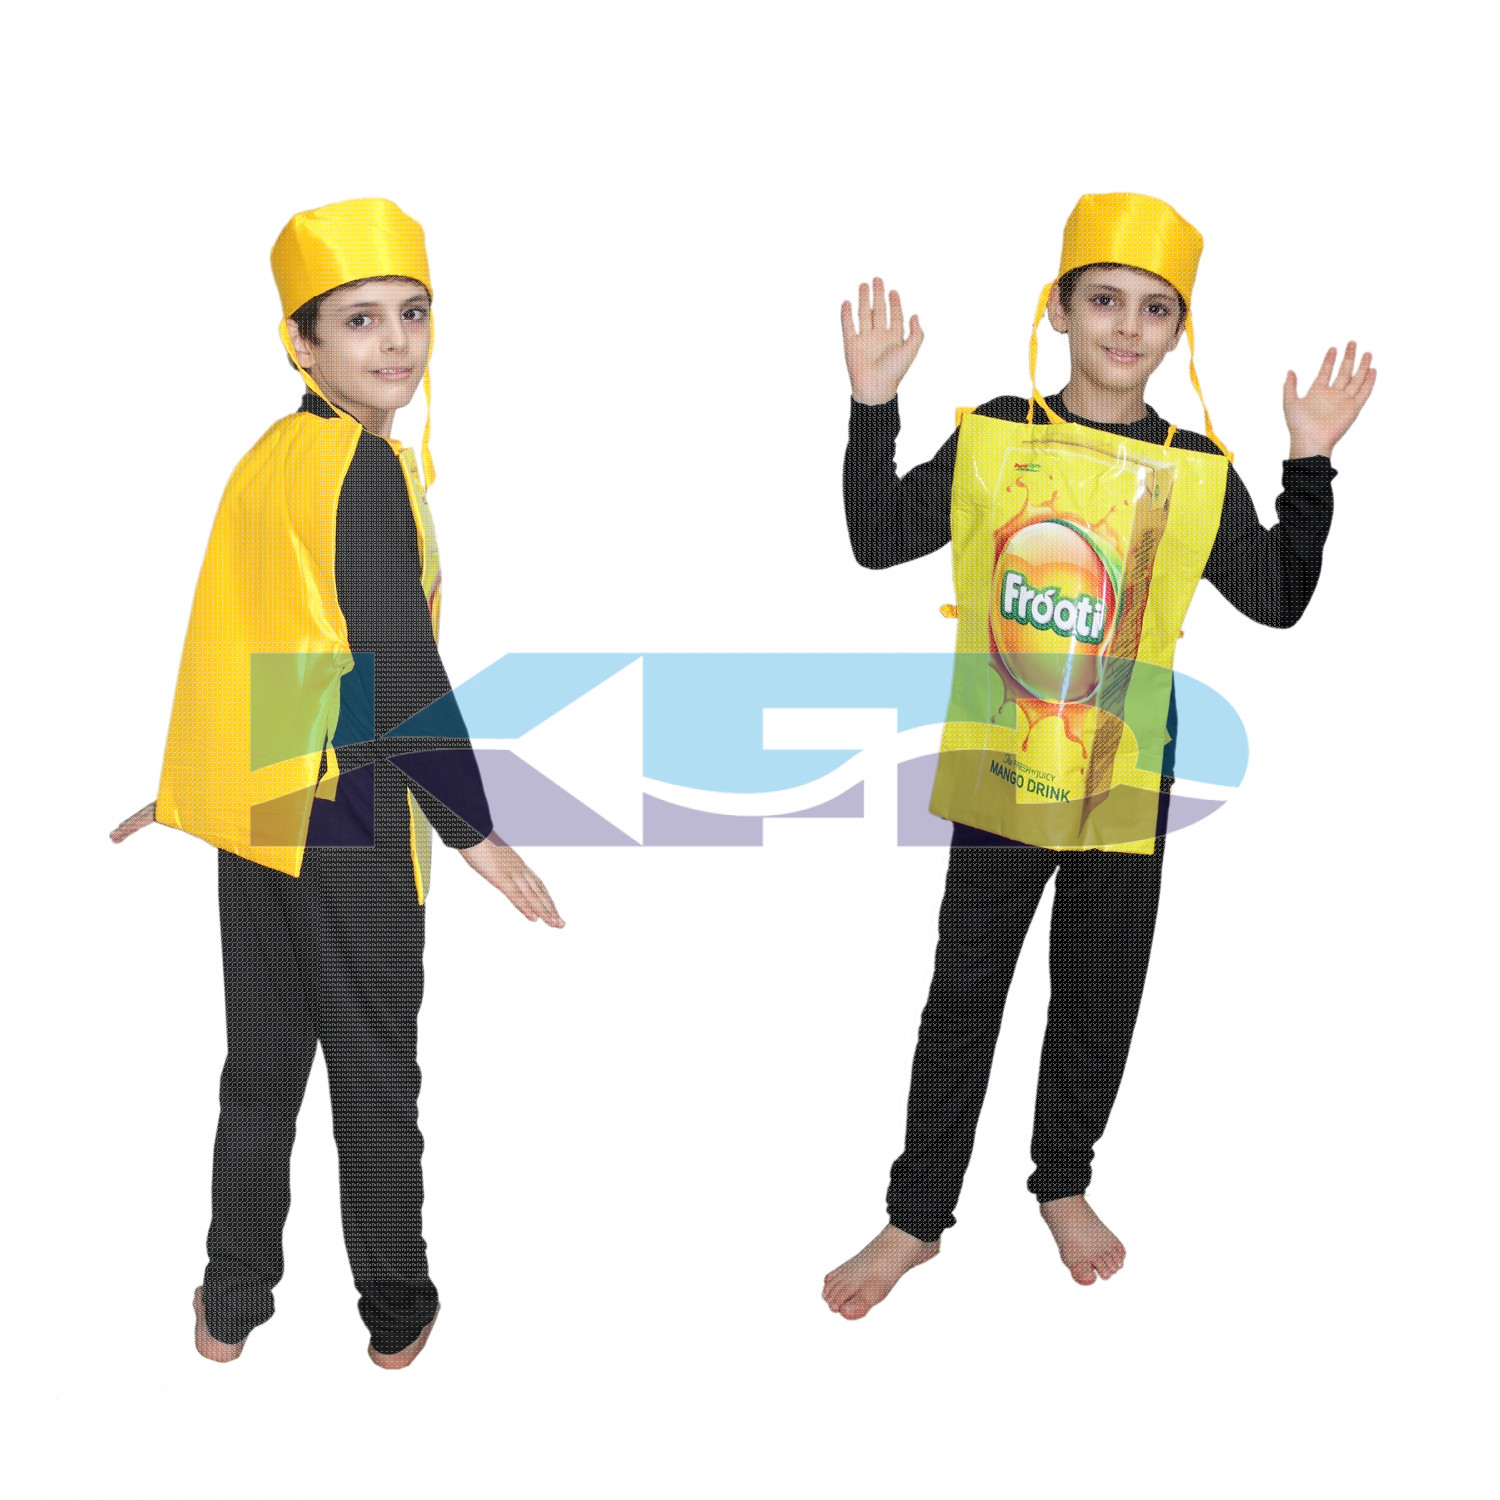 Frooti fancy dress for kids,Object Costume for School Annual function/Theme Party/Competition/Stage Shows Dress